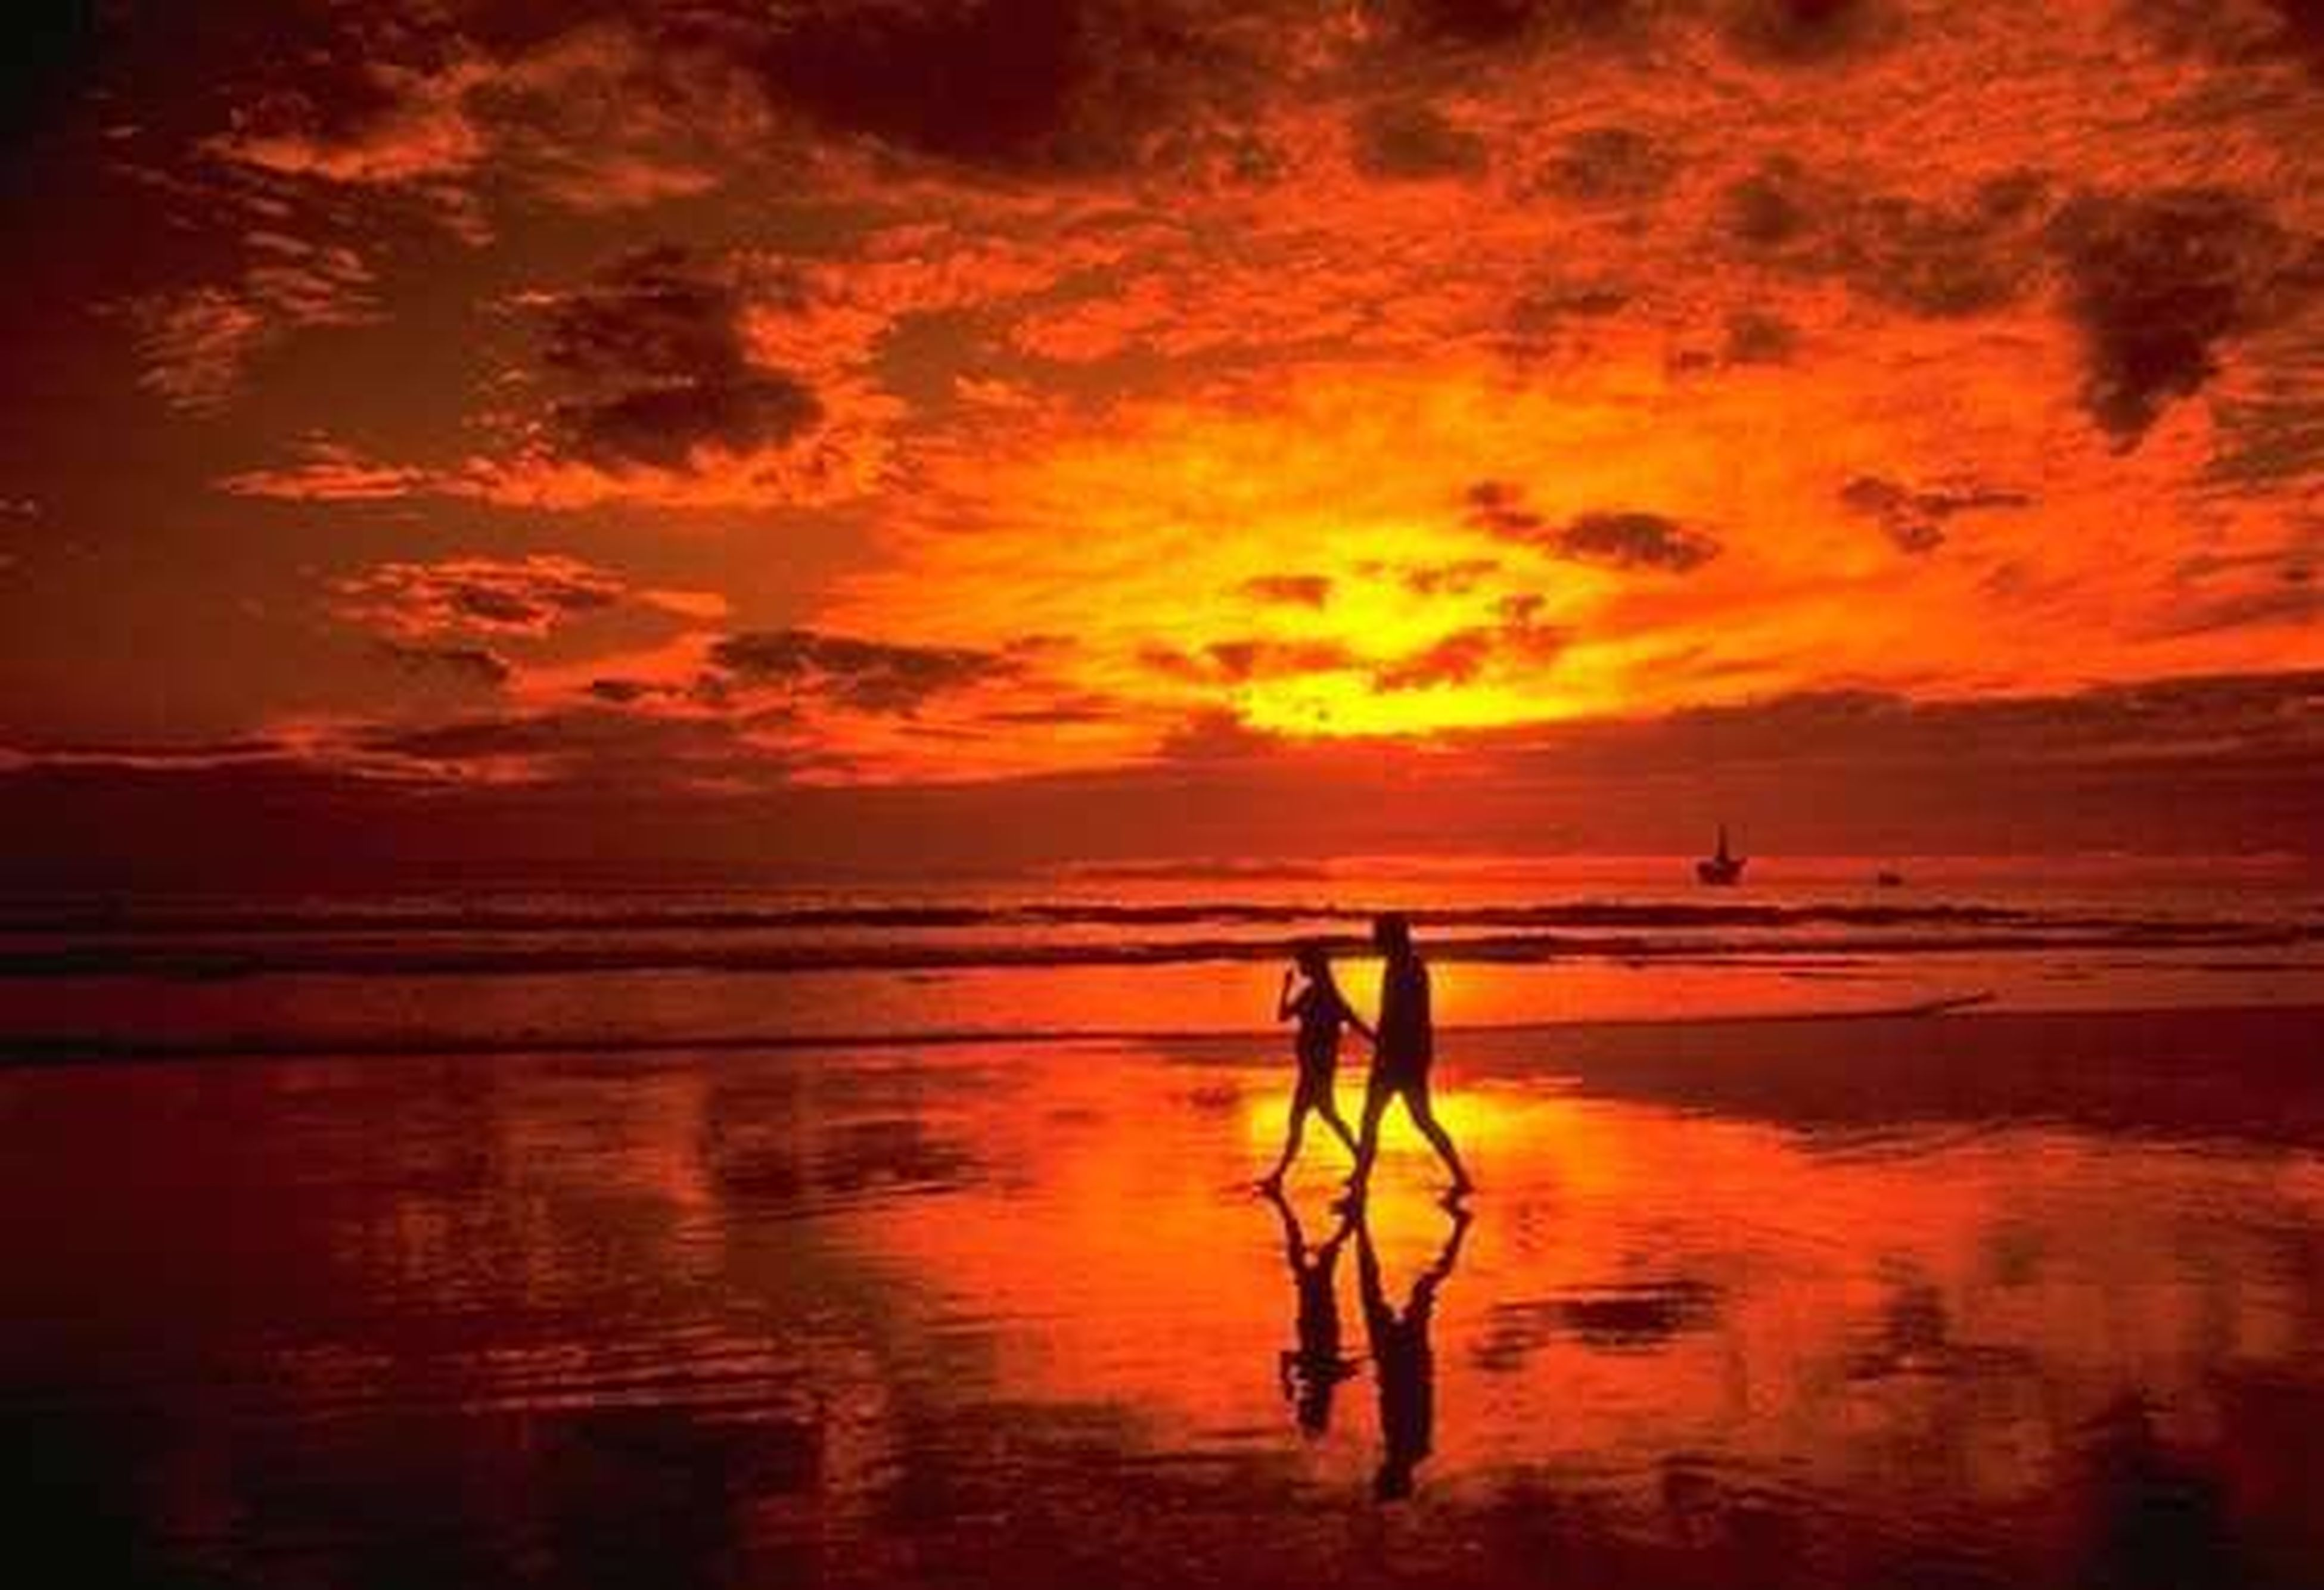 sunset, water, sea, sky, orange color, horizon over water, scenics, cloud - sky, beauty in nature, tranquil scene, beach, tranquility, silhouette, reflection, idyllic, shore, cloud, nature, dramatic sky, cloudy